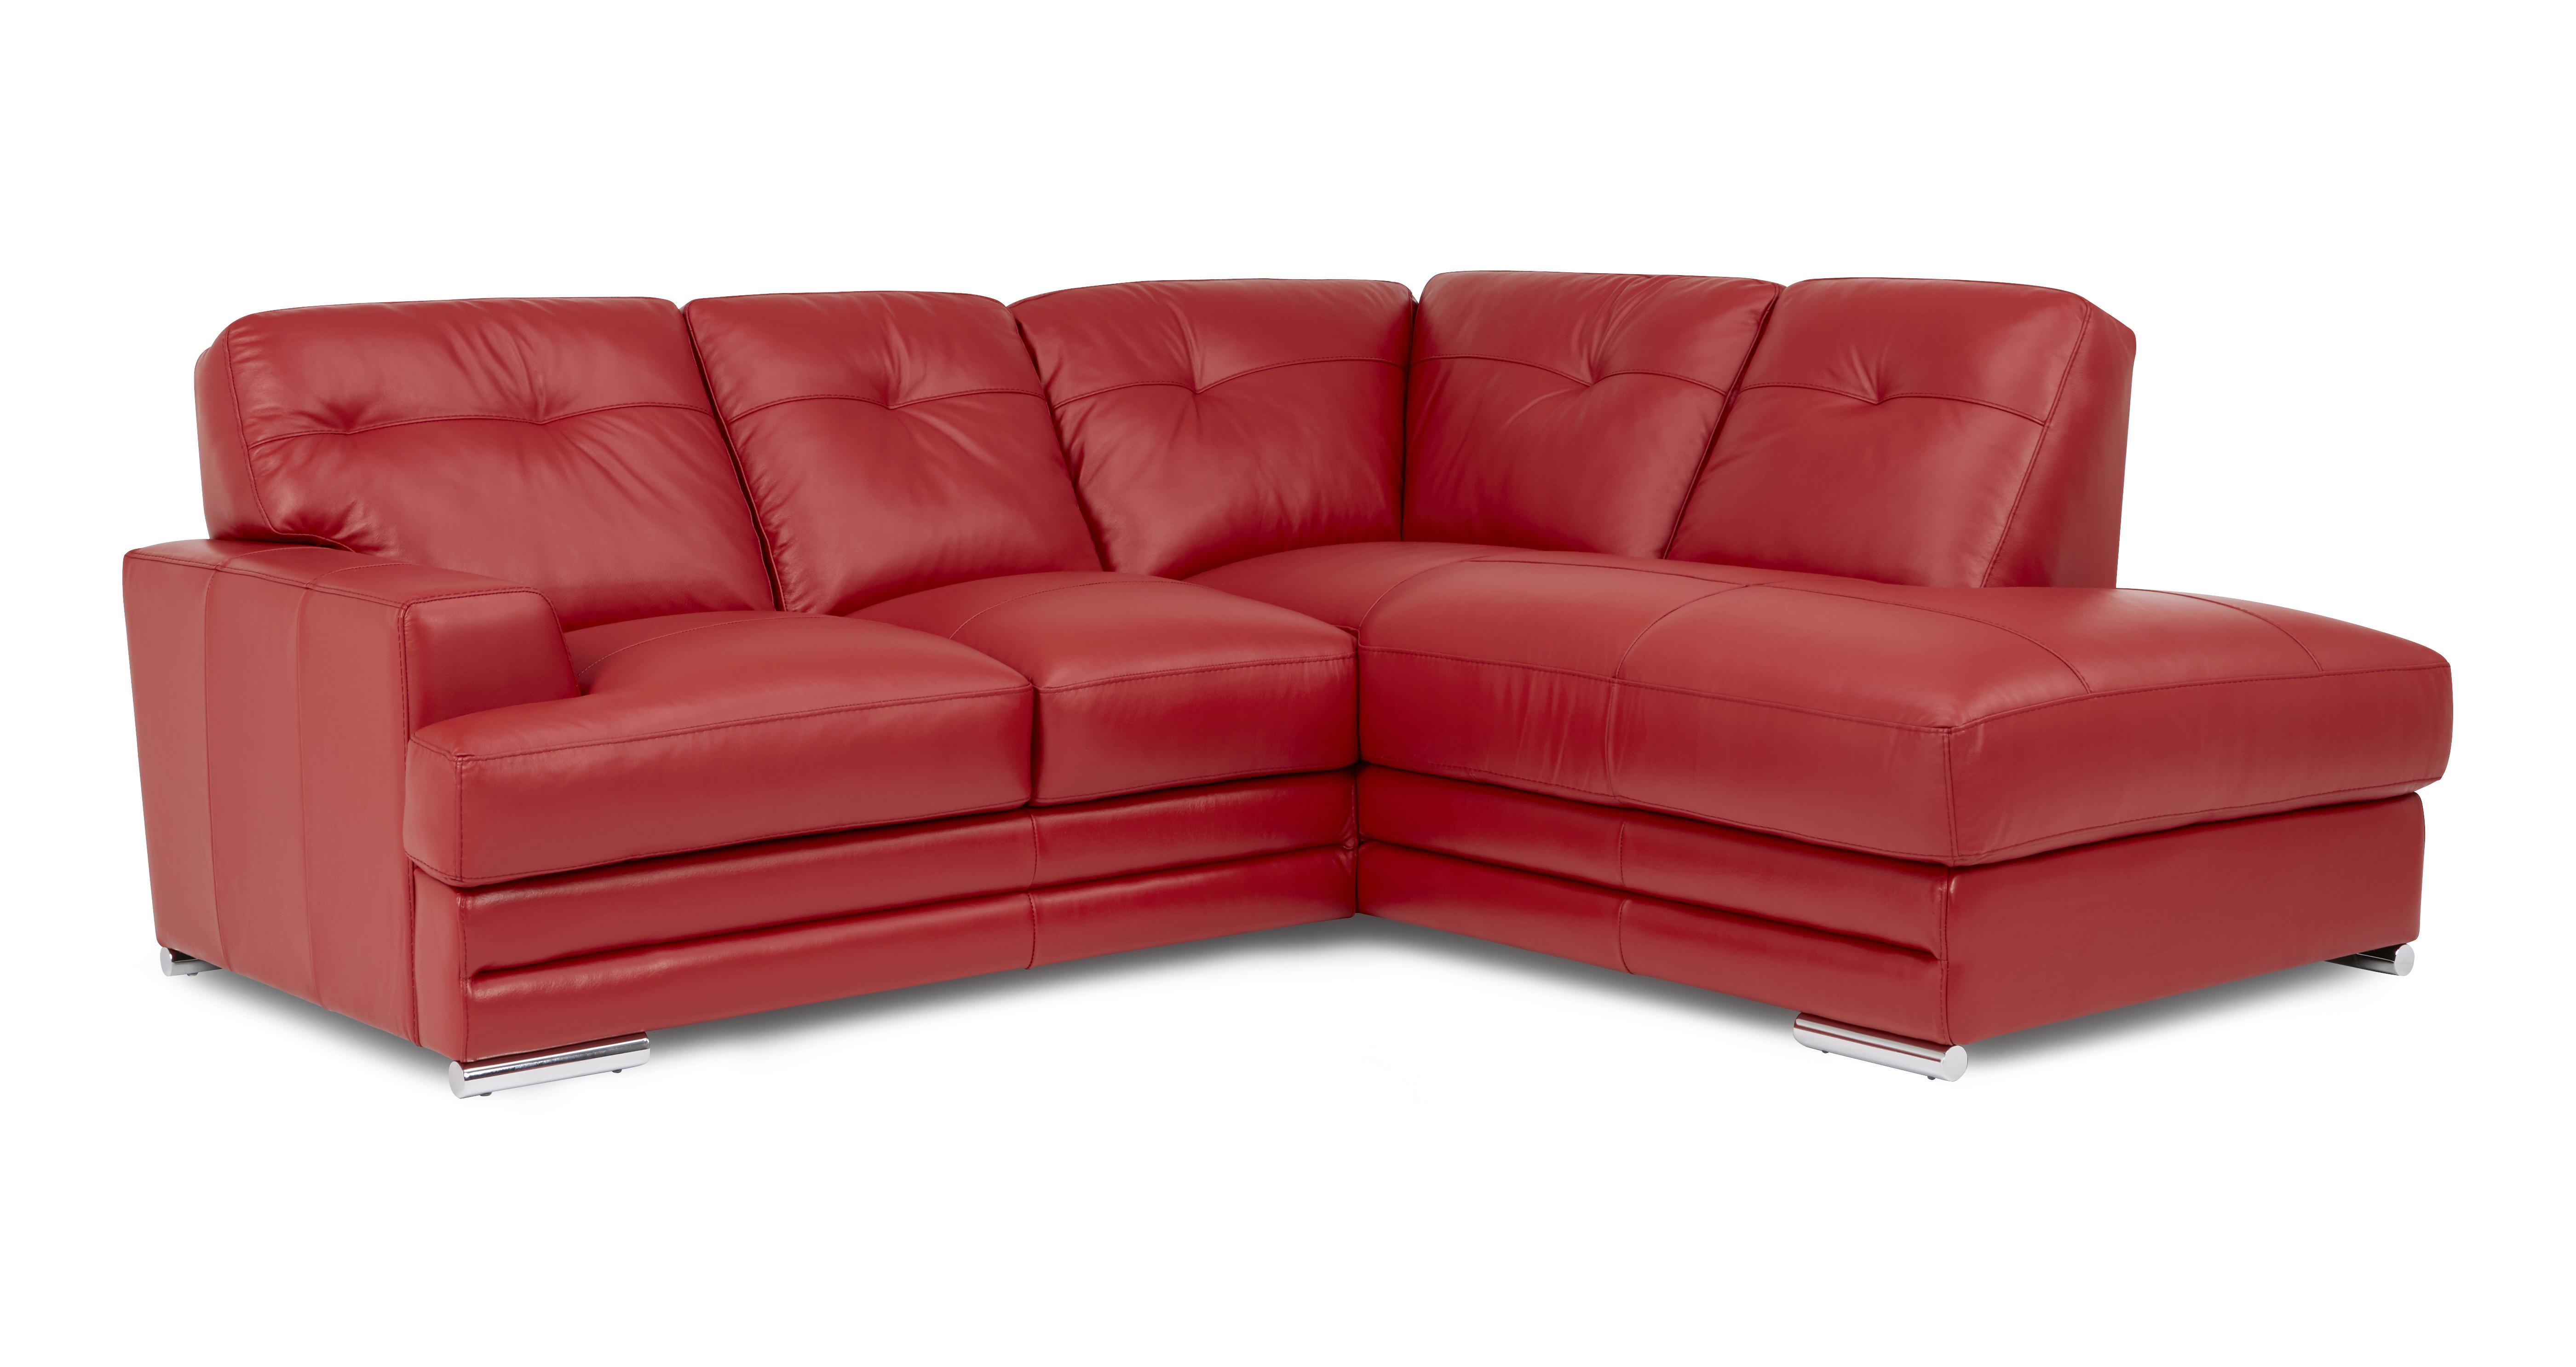 dfs red leather corner sofa bed low cost sectional quantum set 3 piece